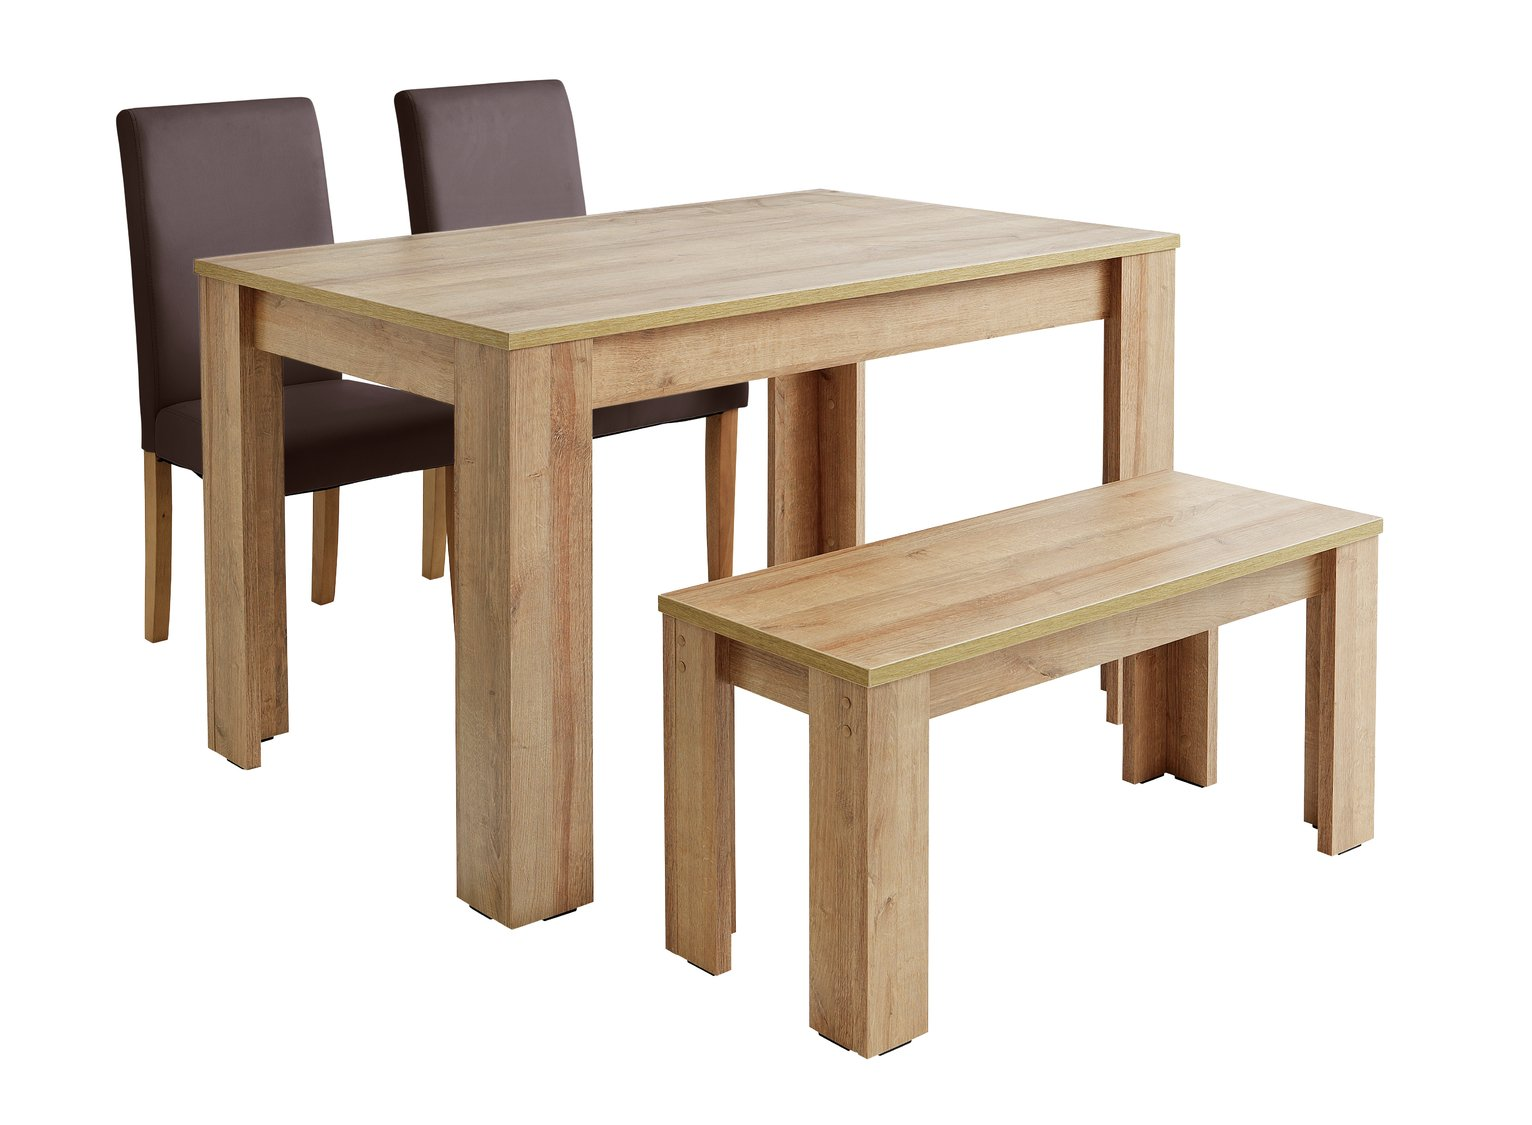 Argos home miami table bench and chairs set chocolate 8241500 argos price tracker pricehistory co uk